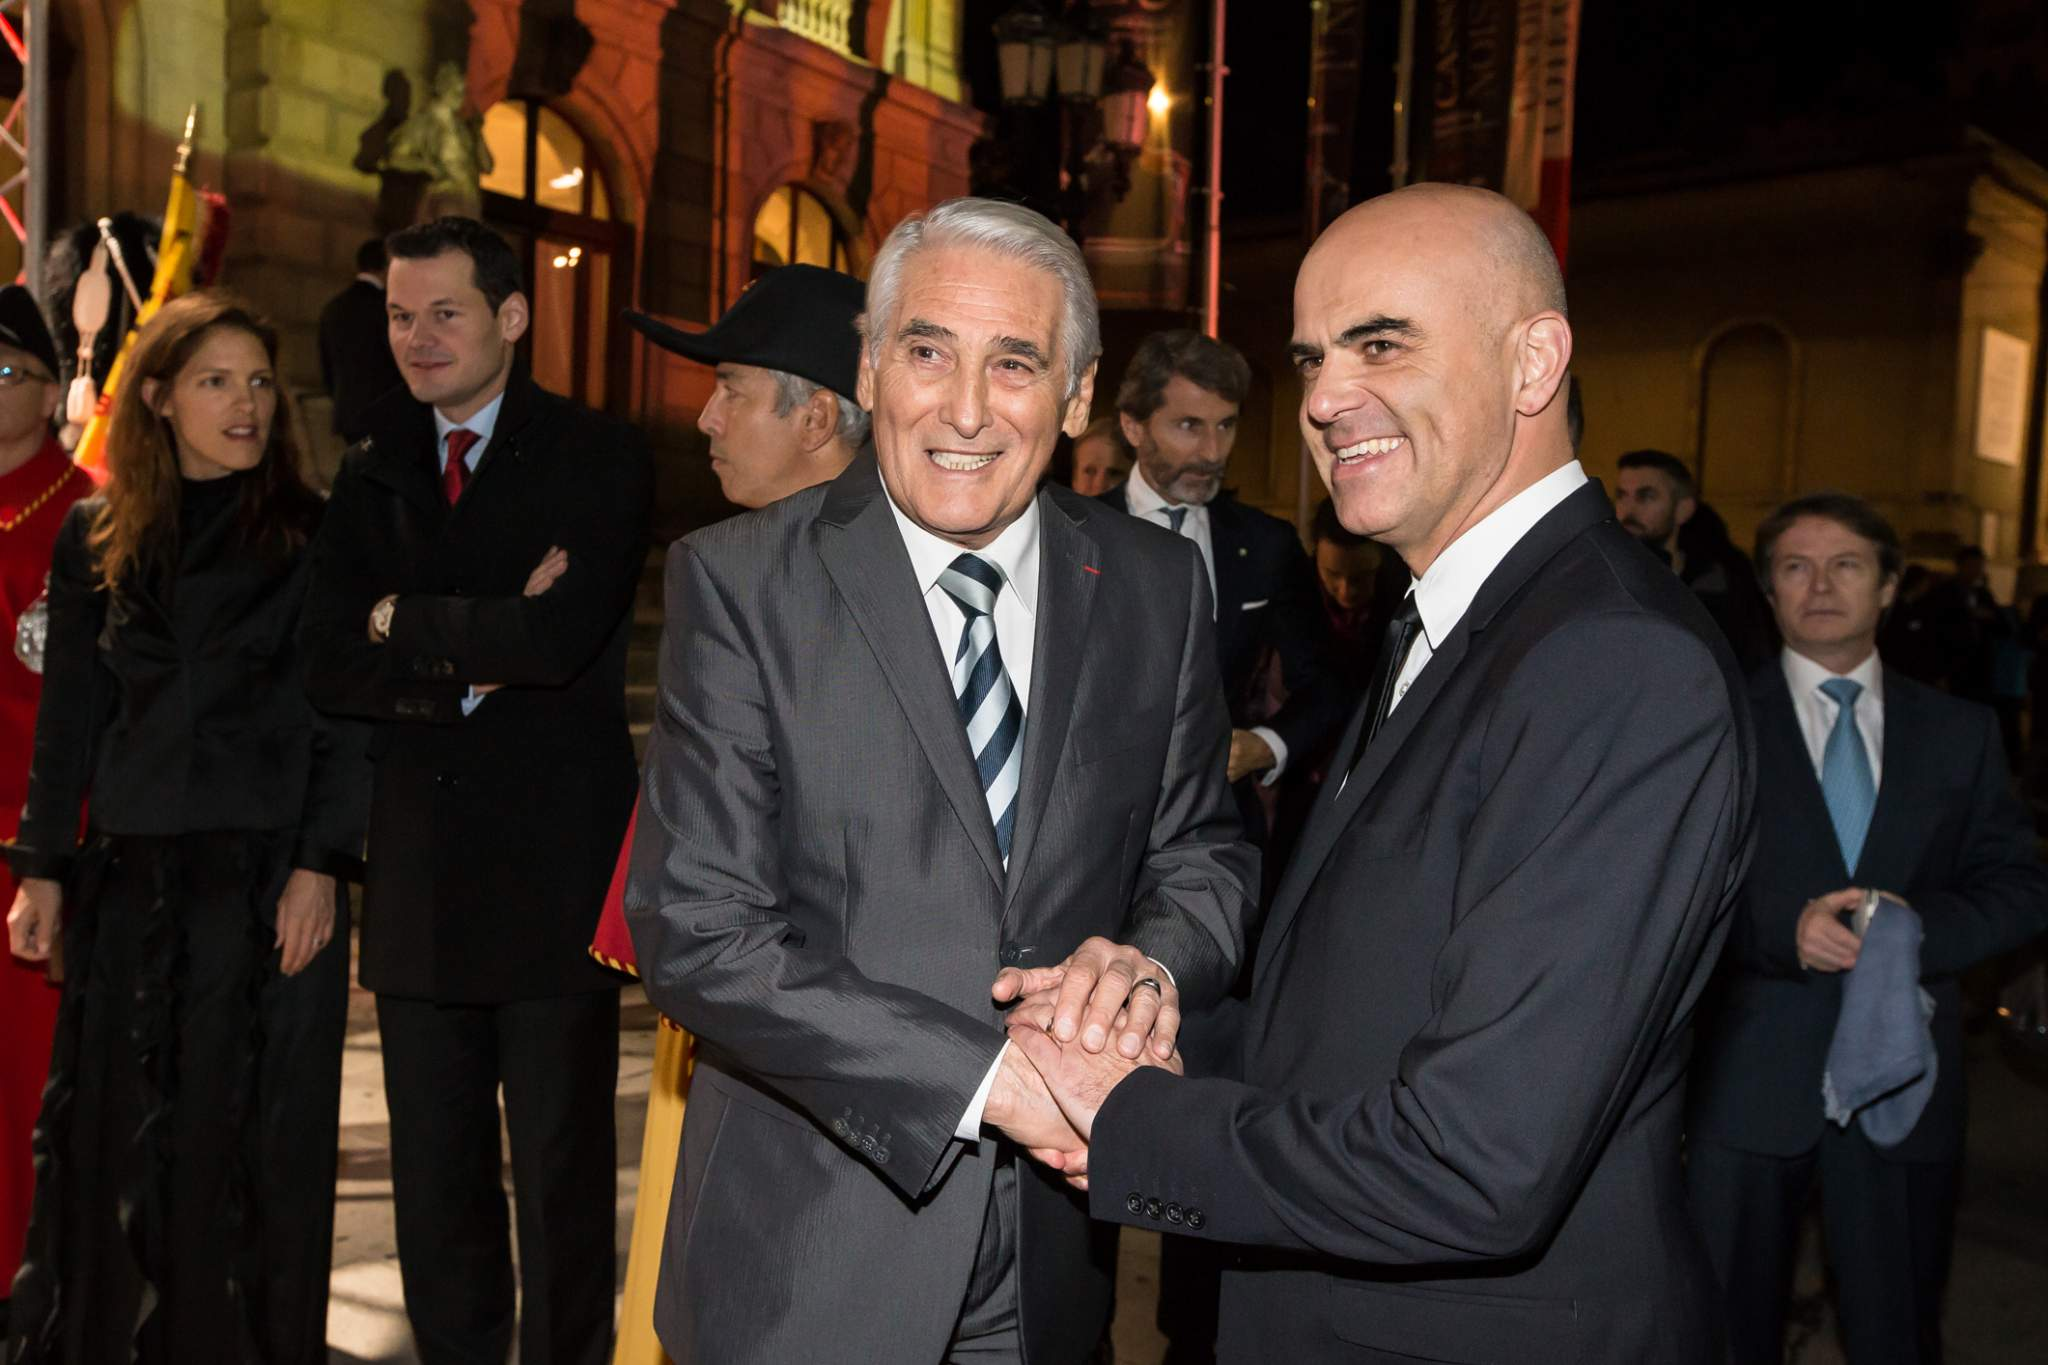 Carlo Lamprecht (President of the Foundation of the GPHG) and Alain Berset (Federal Councillor) at the prize-giving ceremony of the GPHG 2015